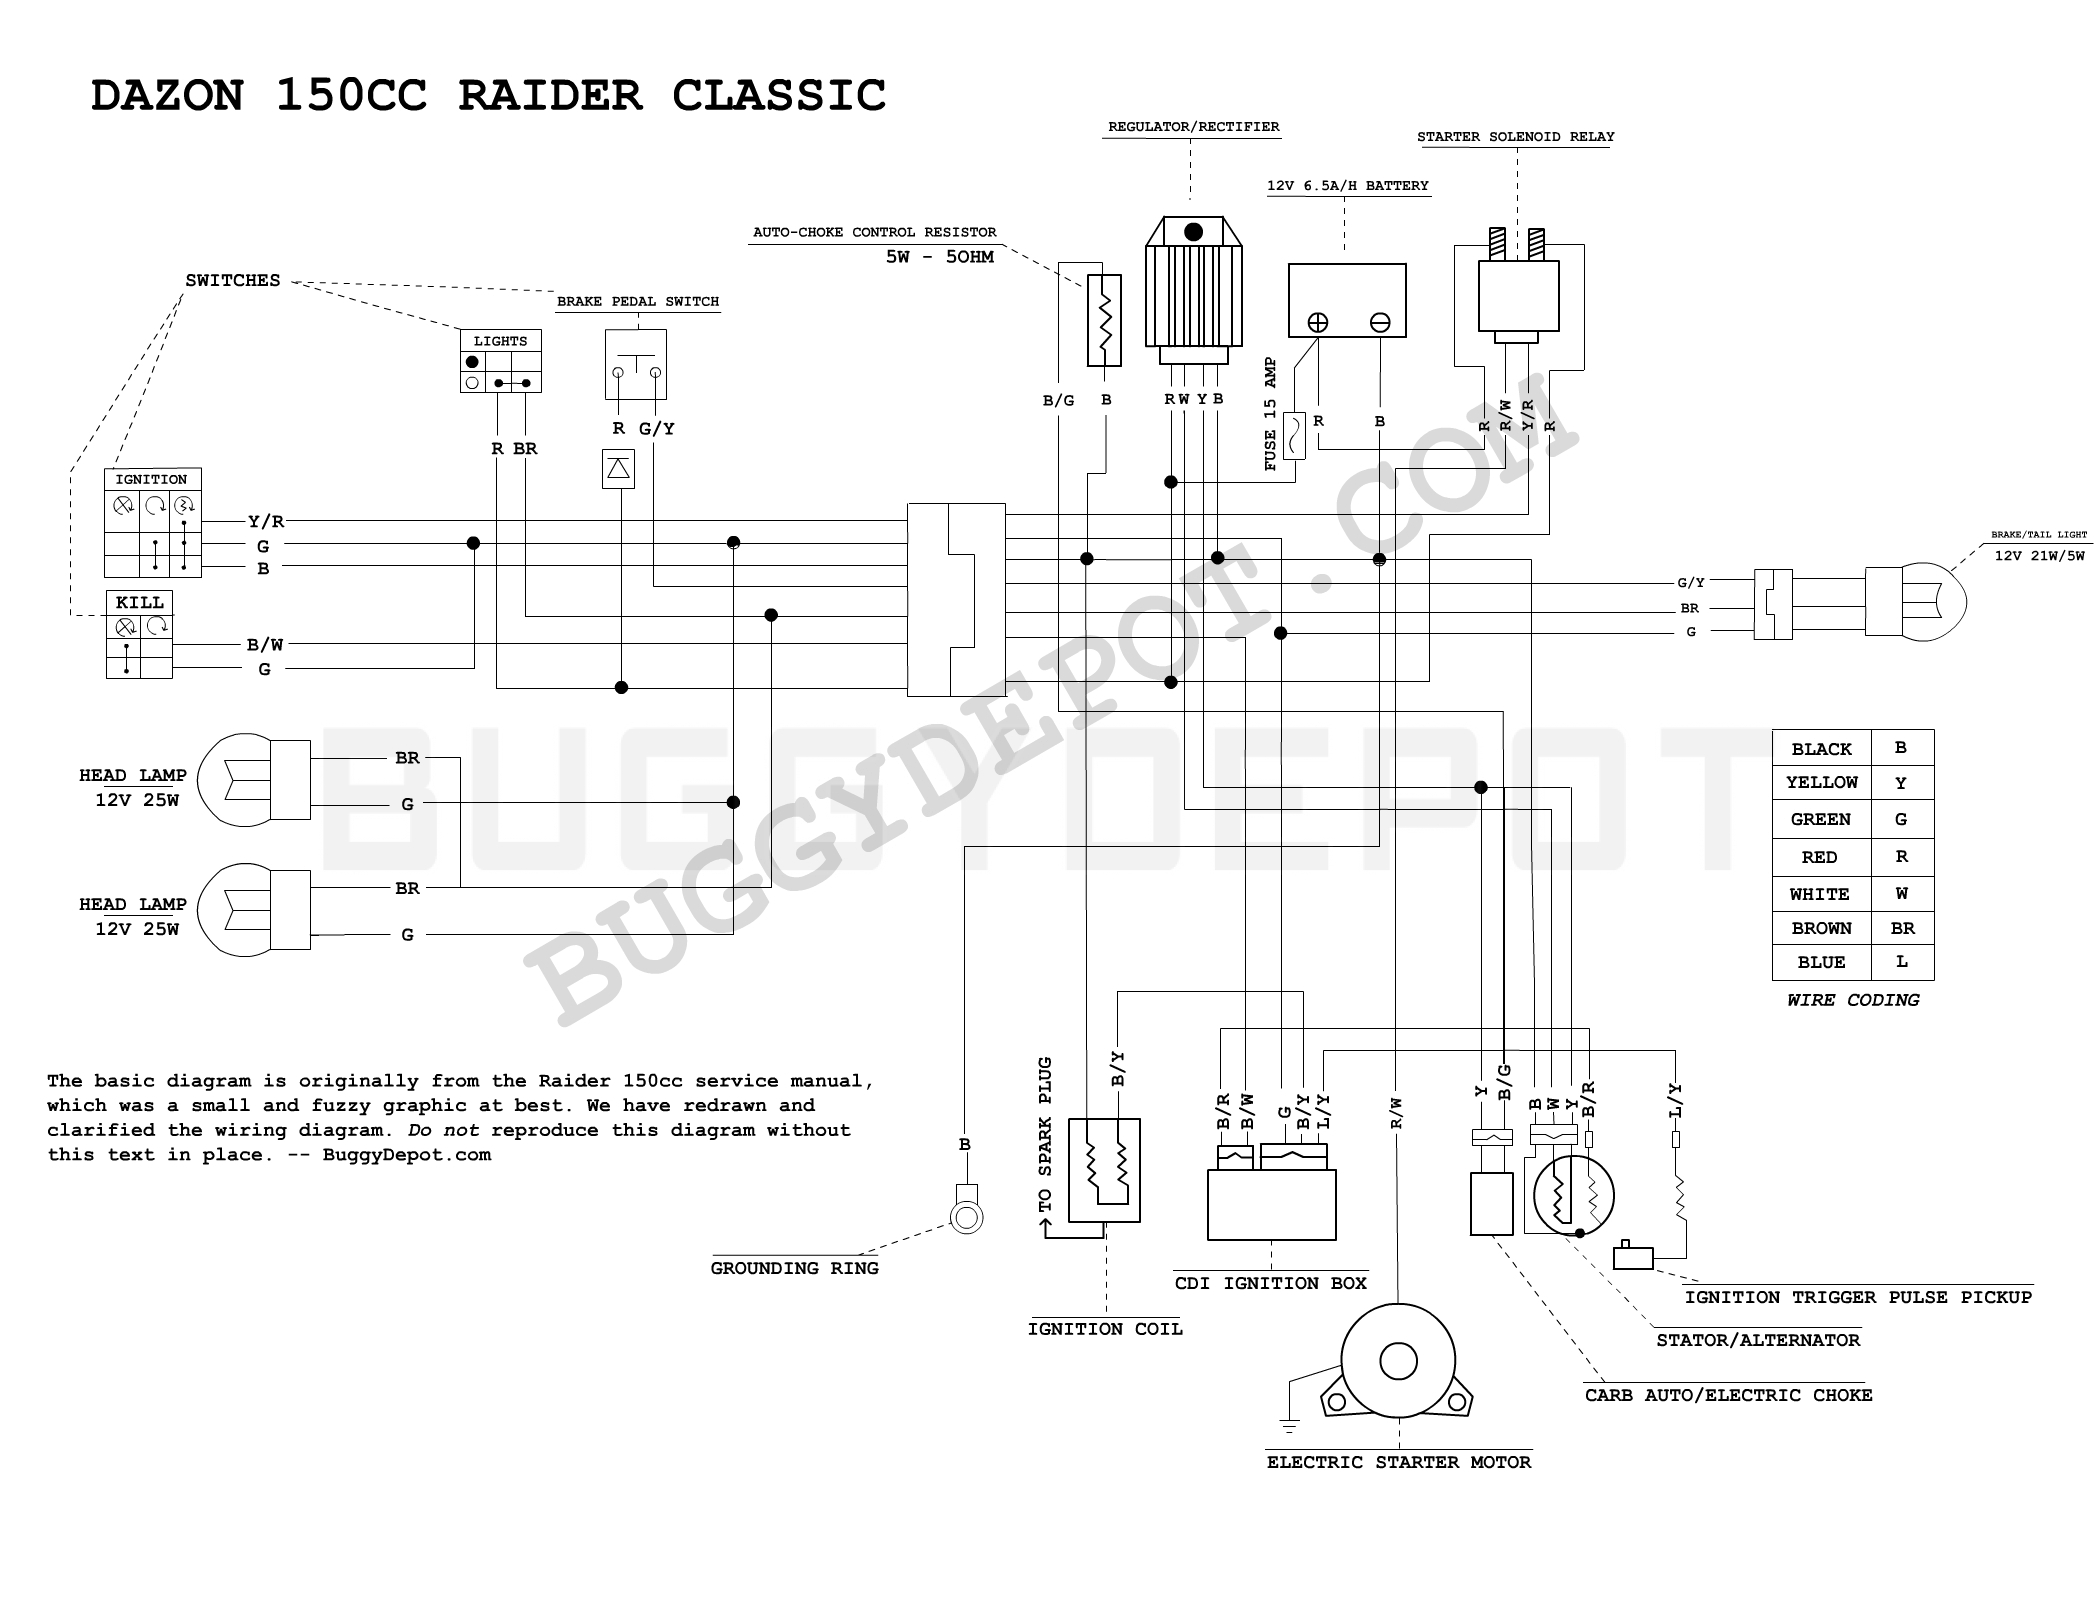 Bullet Wiring Diagram 90 Cc Quad Library Honda Article 33 1278205207 Dazon Raider Classic